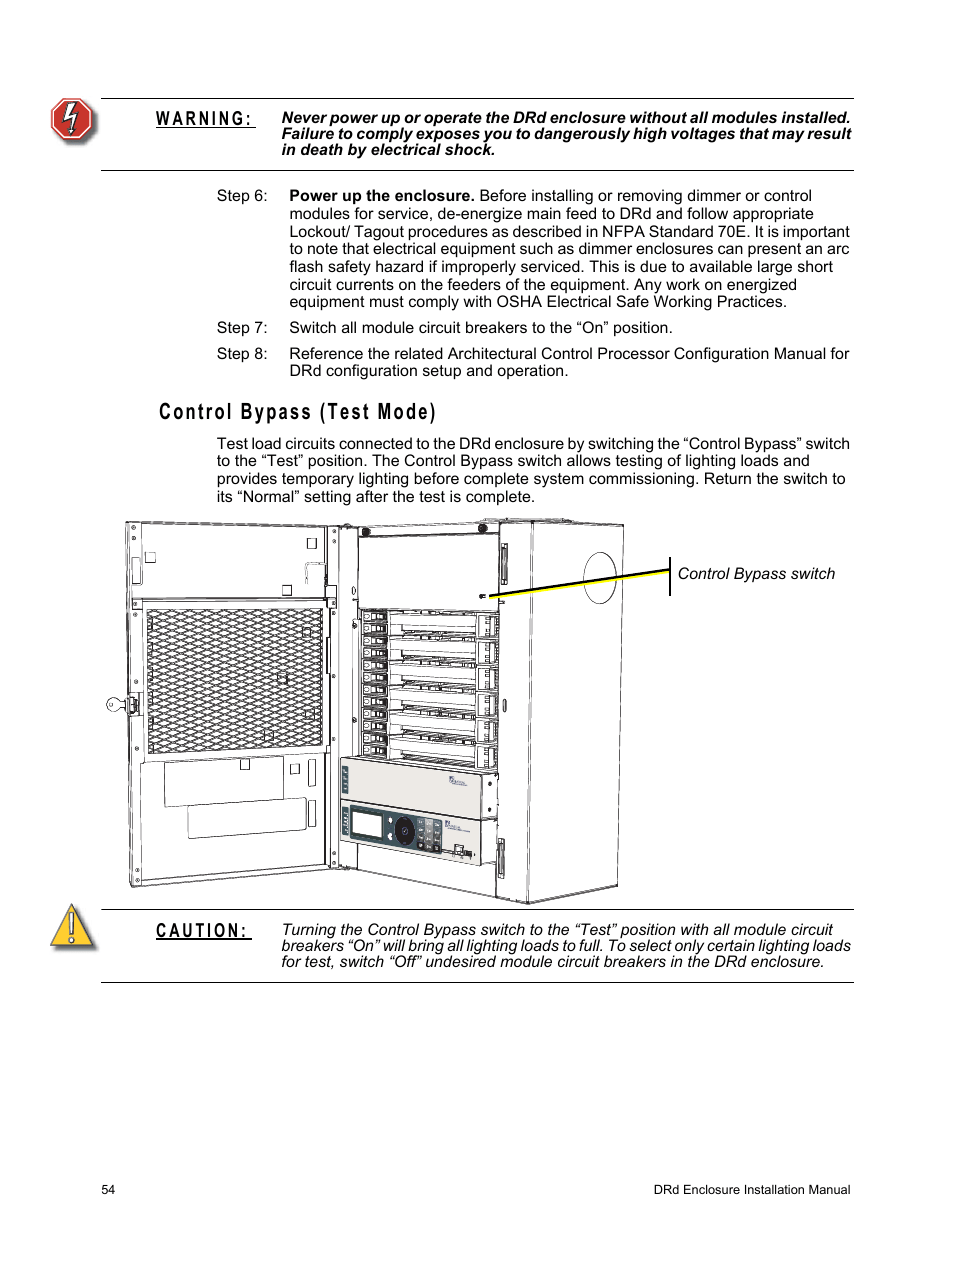 medium resolution of control bypass test mode etc unison drd dimming rack enclosure user manual page 58 68